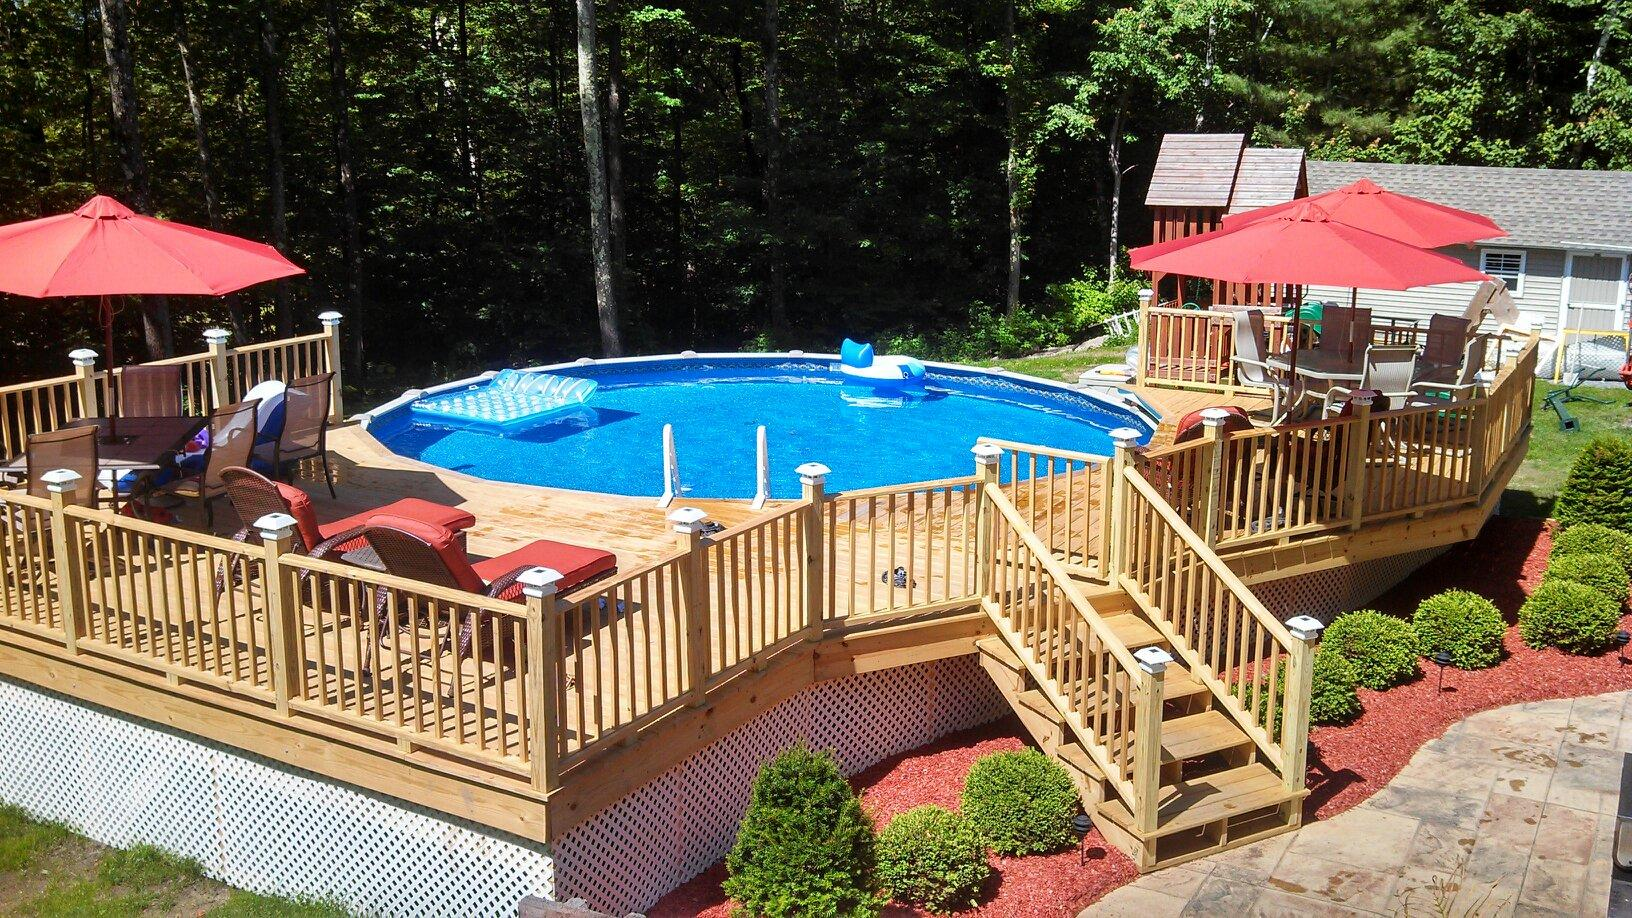 guertinpooldeck distinctionpool distinction the purchase of an aboveground pool provides years of